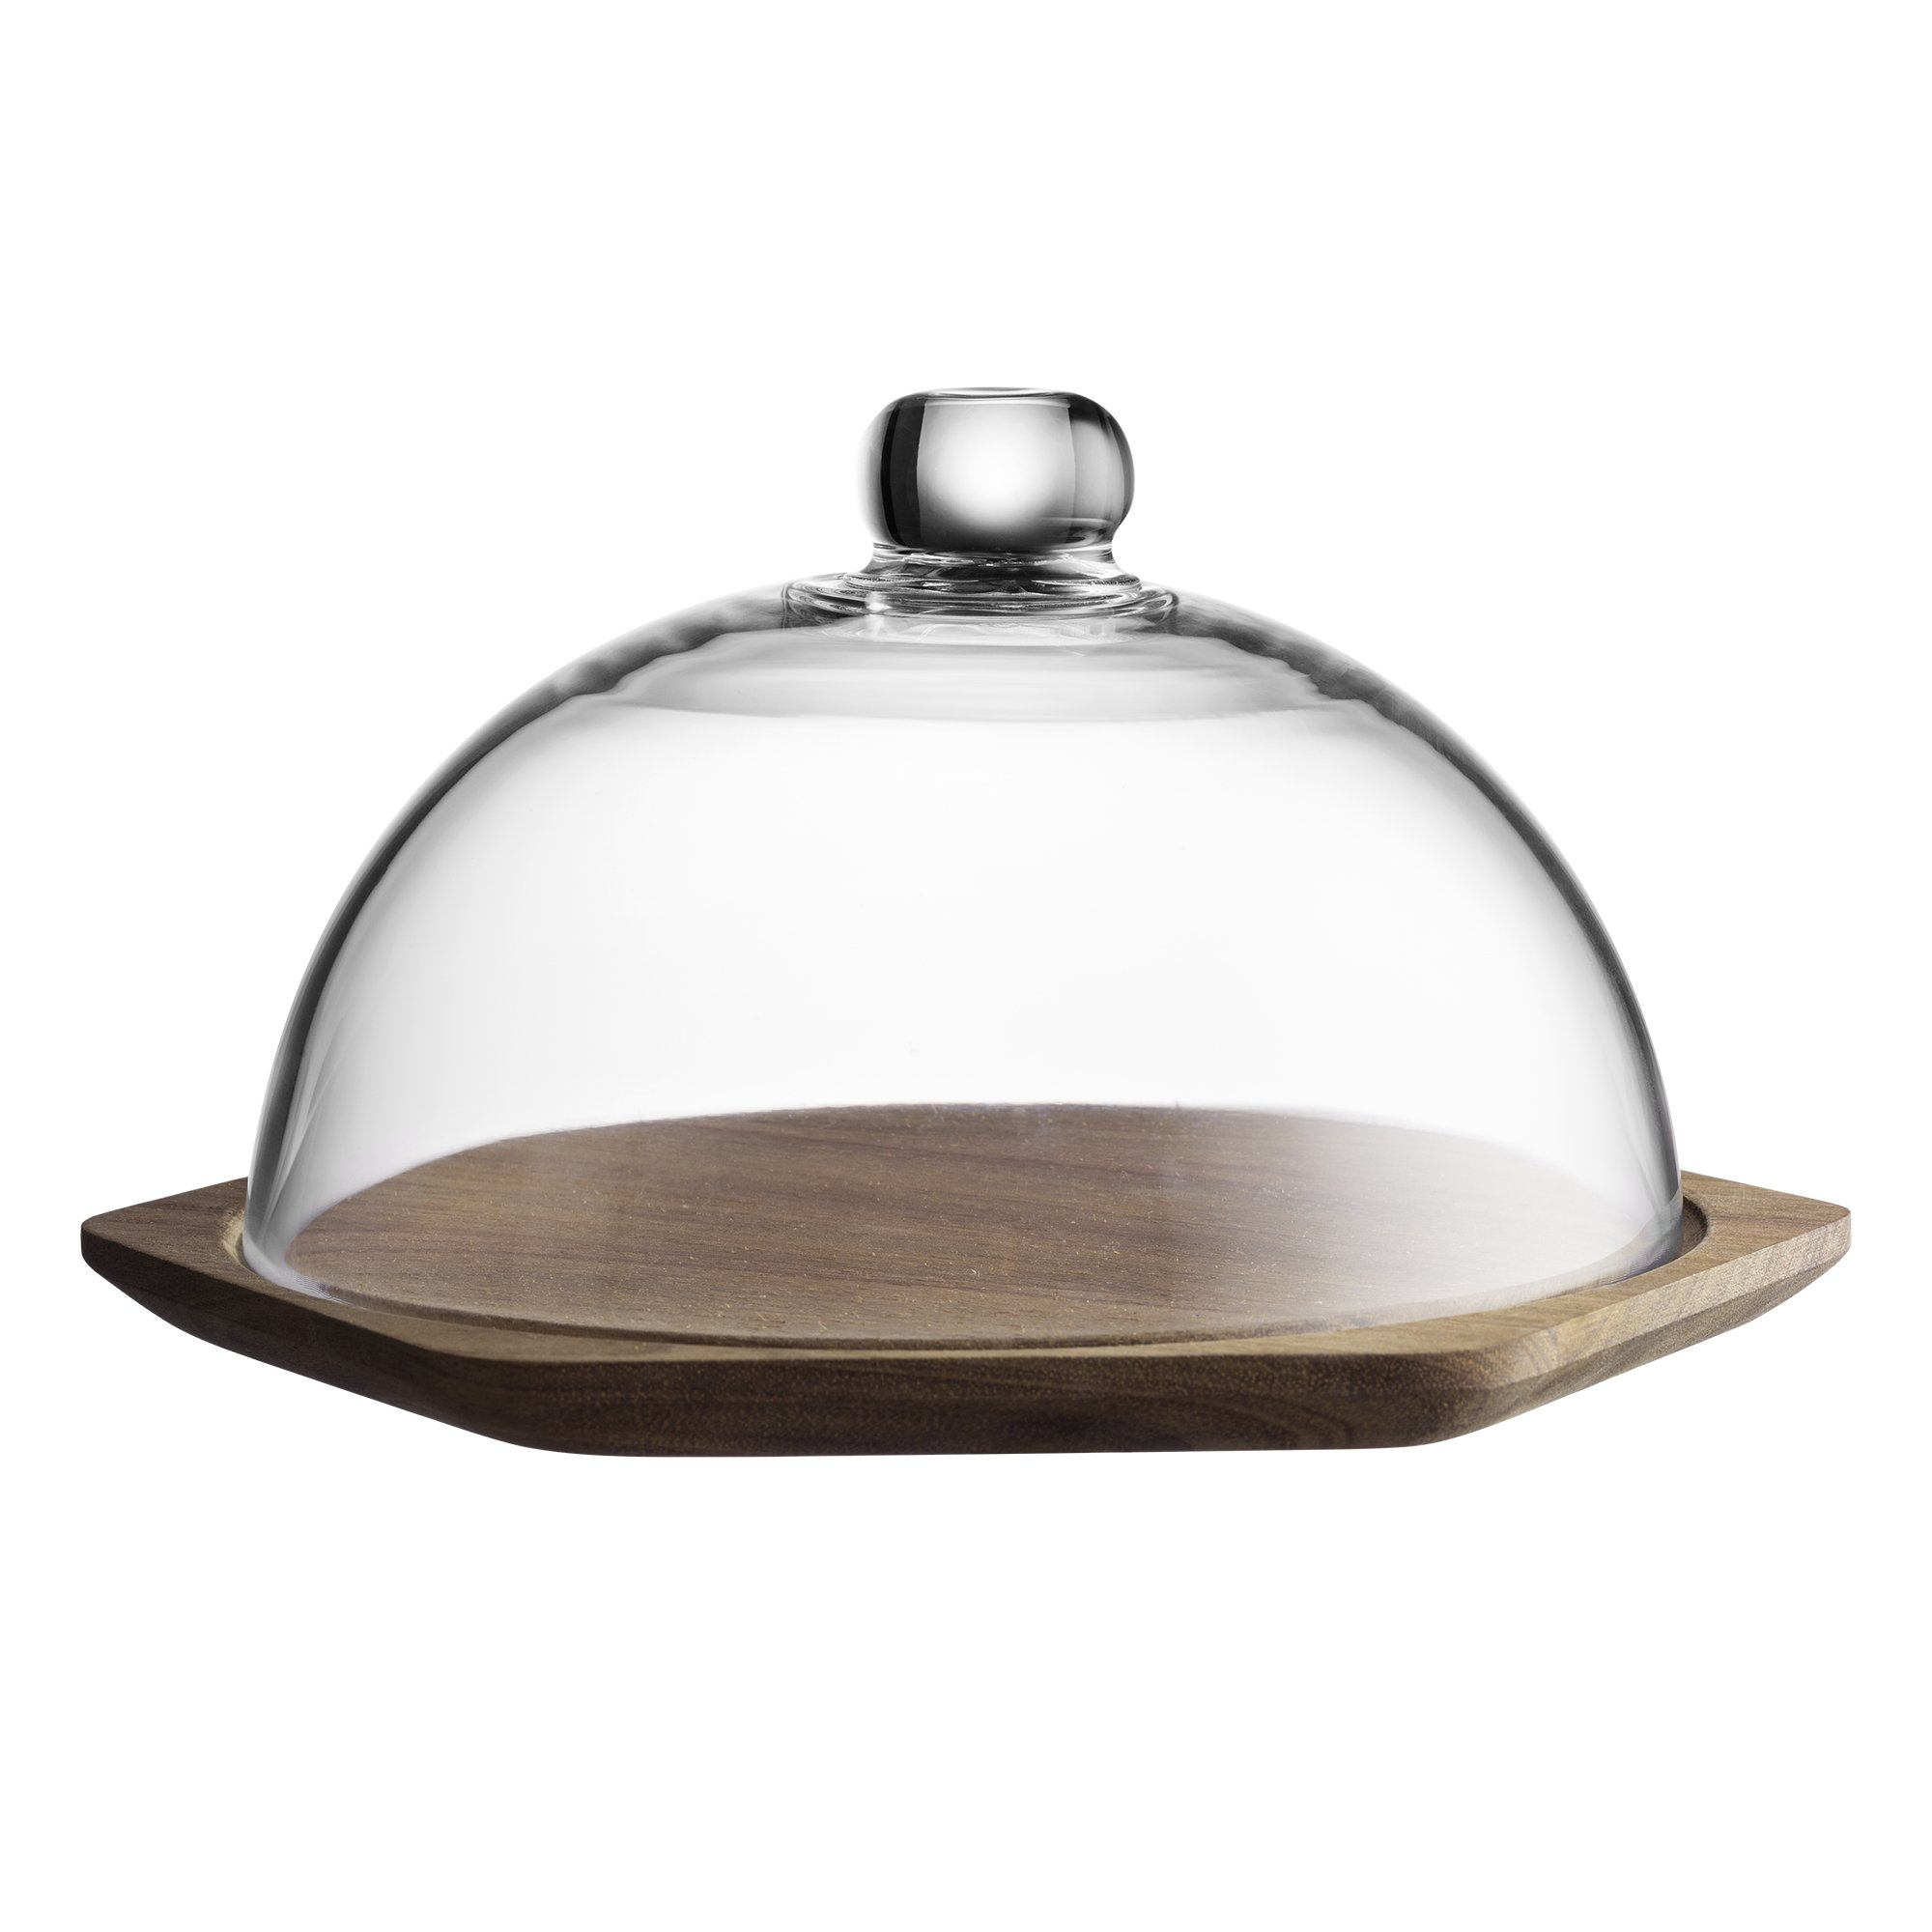 Typhoon Modern Kitchen Cheese Board With Glass Dome, Natural Acacia Wood Design, Elegant Dome Protects Contents, Perfect for Both Preparing and Serving, 9-3/4'' X 8-3/4'' X 5-1/2''